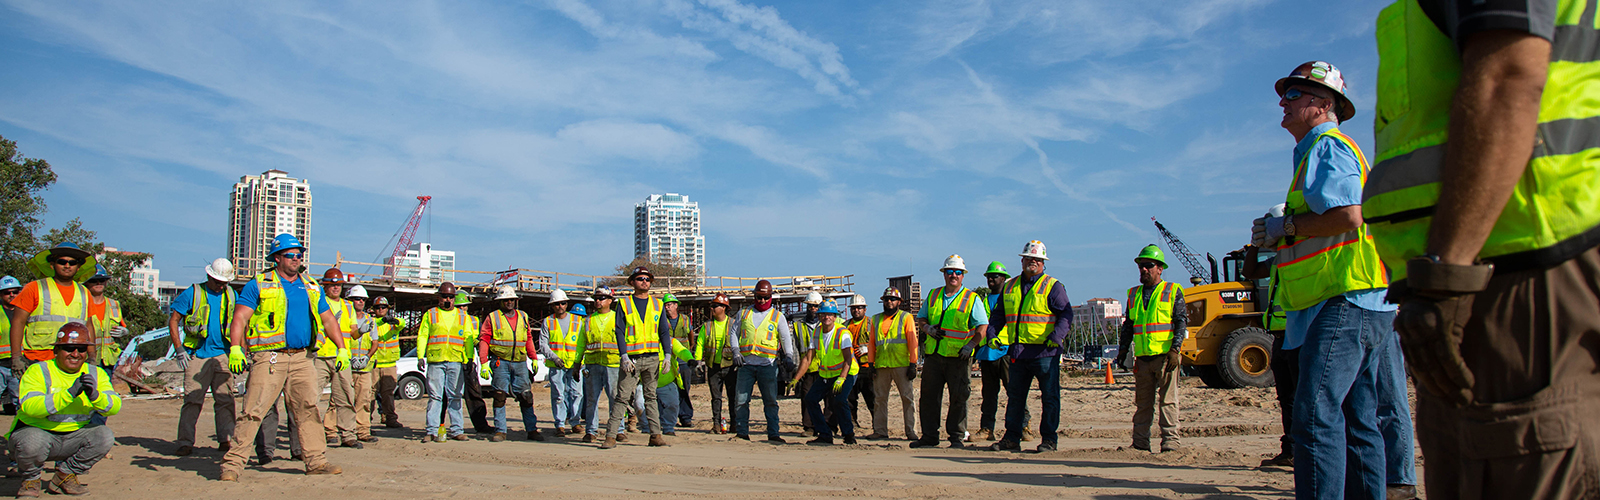 The Skanska USA construction crew at St. Pete Pier during Safety Week.